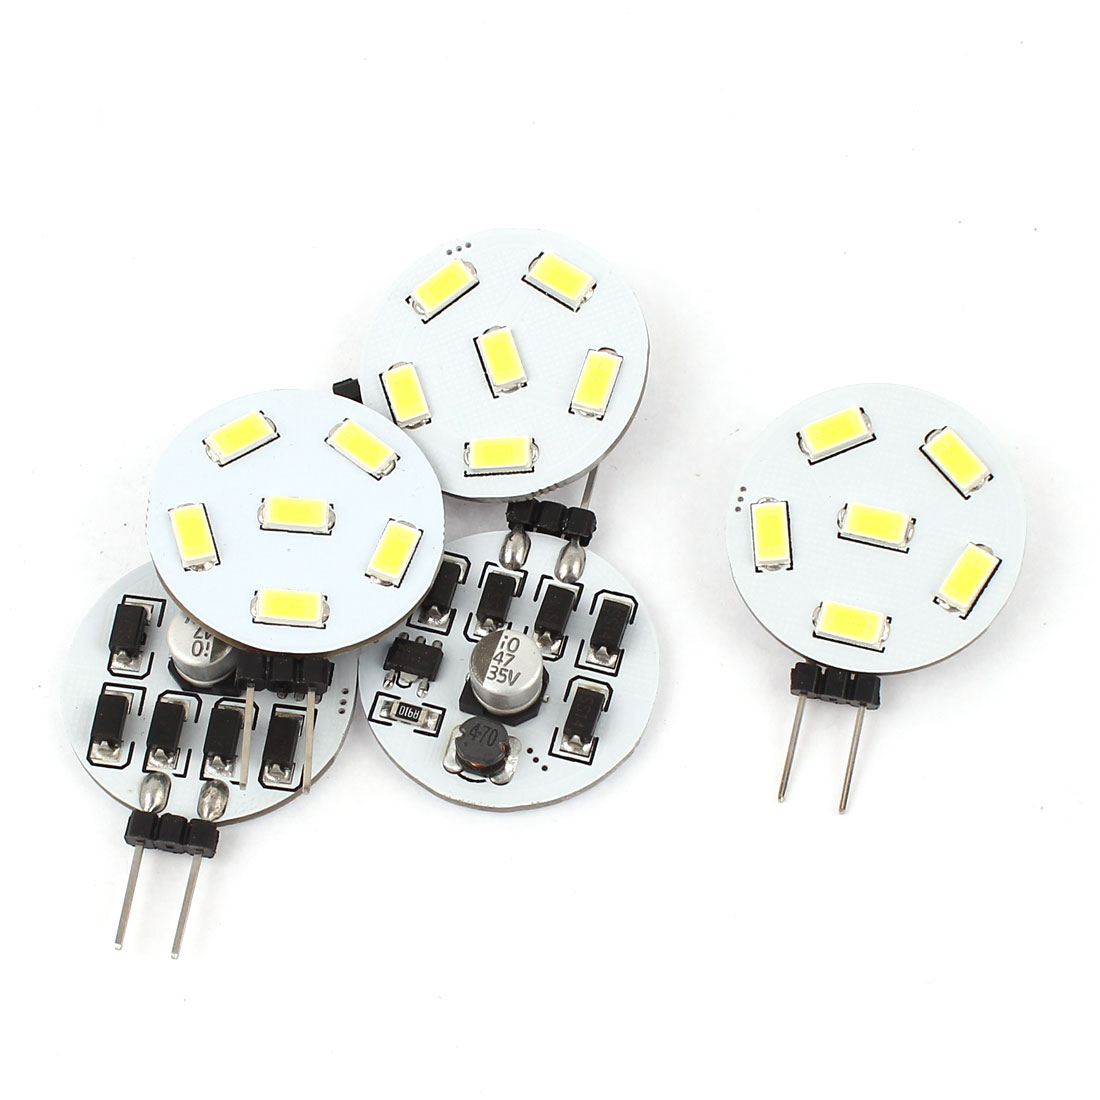 5PCS 230LM G4 5730 SMD 6 LED Cabinet Marine Boat Light Bulb Lamp White